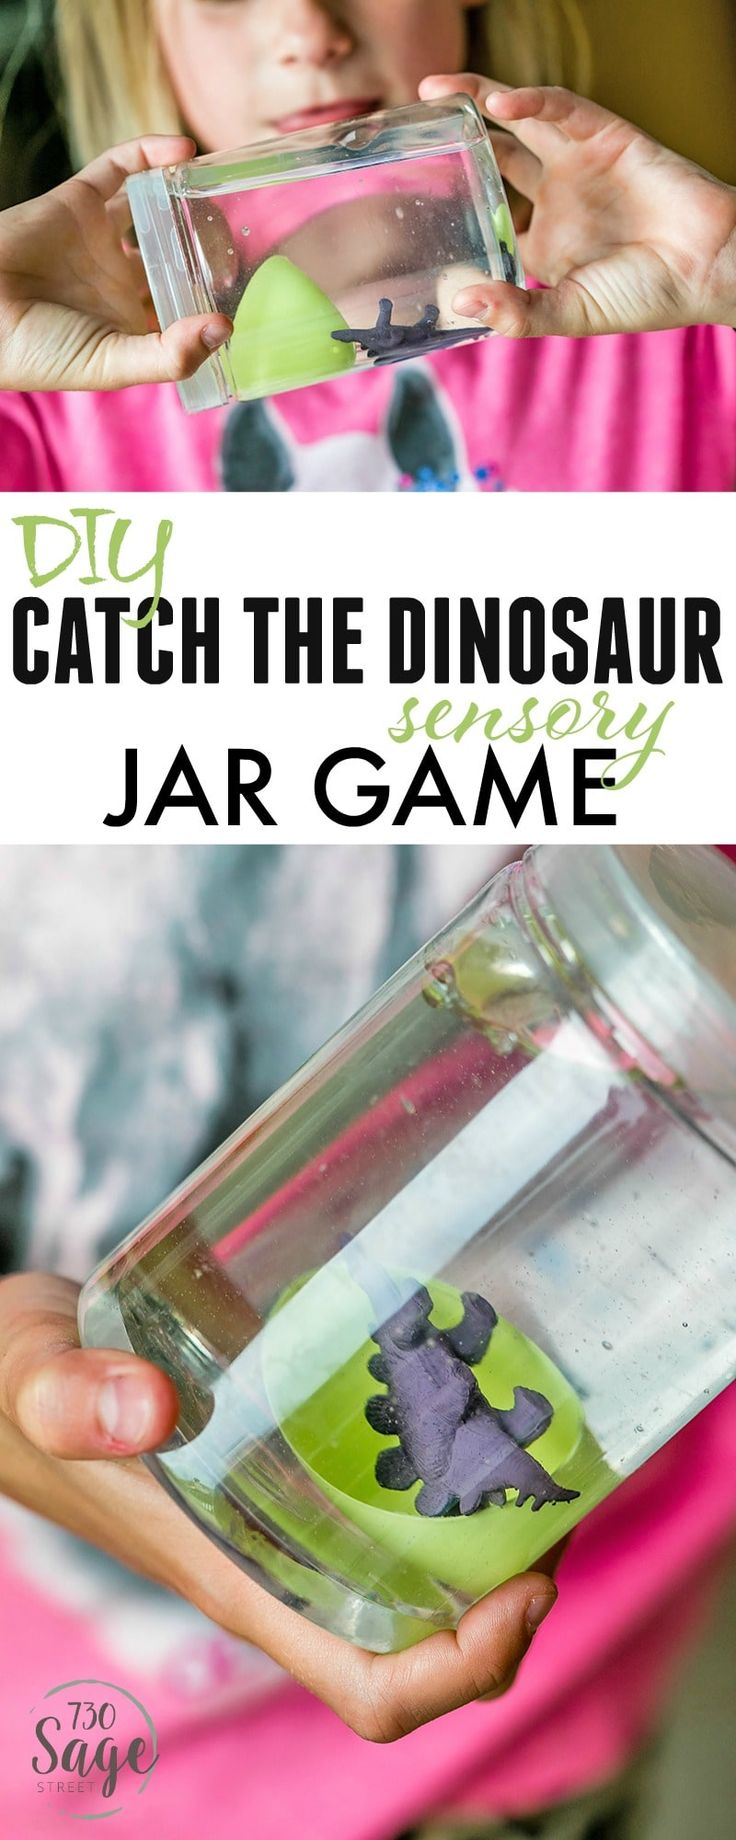 Dinosaur Preschool Crafts help engage imaginations and keep kids busy. This DIY Catch The Dinosaur Sensory Jar Game is easy to make and is super fun! via @730sagestreet